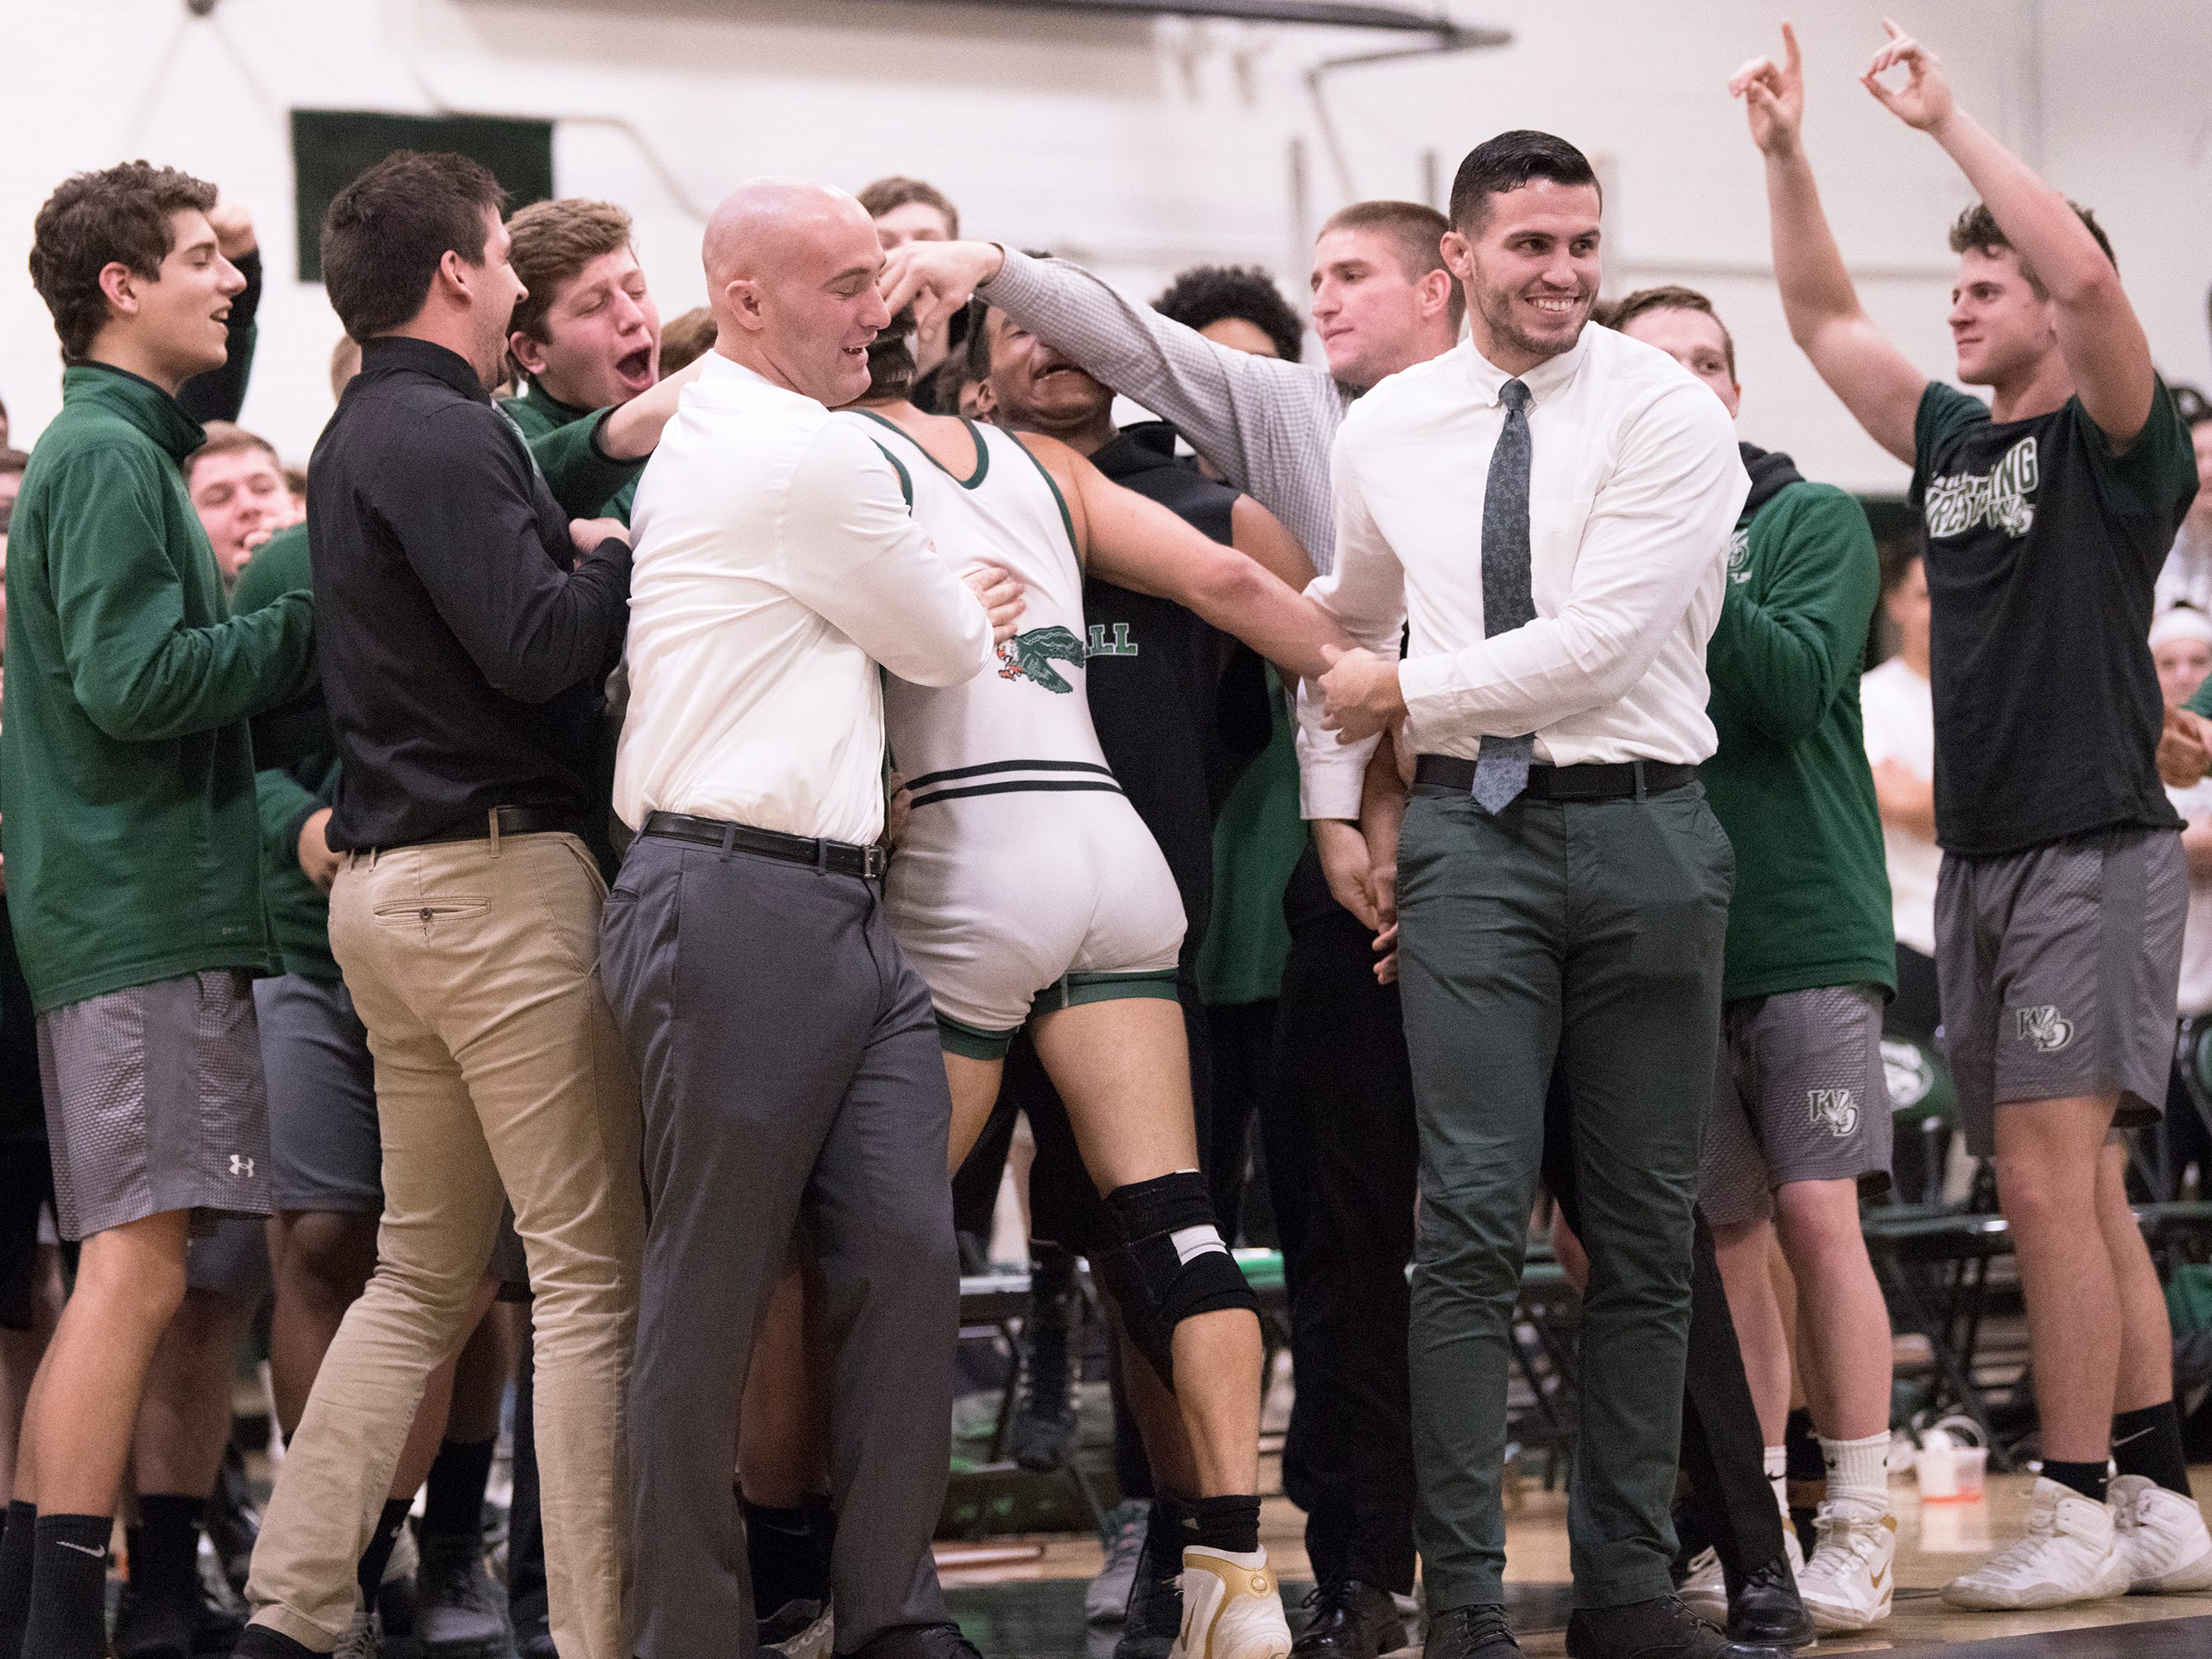 Members of the West Deptford High School wrestling team celebrate after West Deptford's Corey Fischer pinned Haddonfield's Aidan Barr during the 160 lb. bout of the the SJ Group 2 title meet held at West Deptford High School on Friday, February 8, 2019.     West Deptford defeated Haddonfield, 38-20.